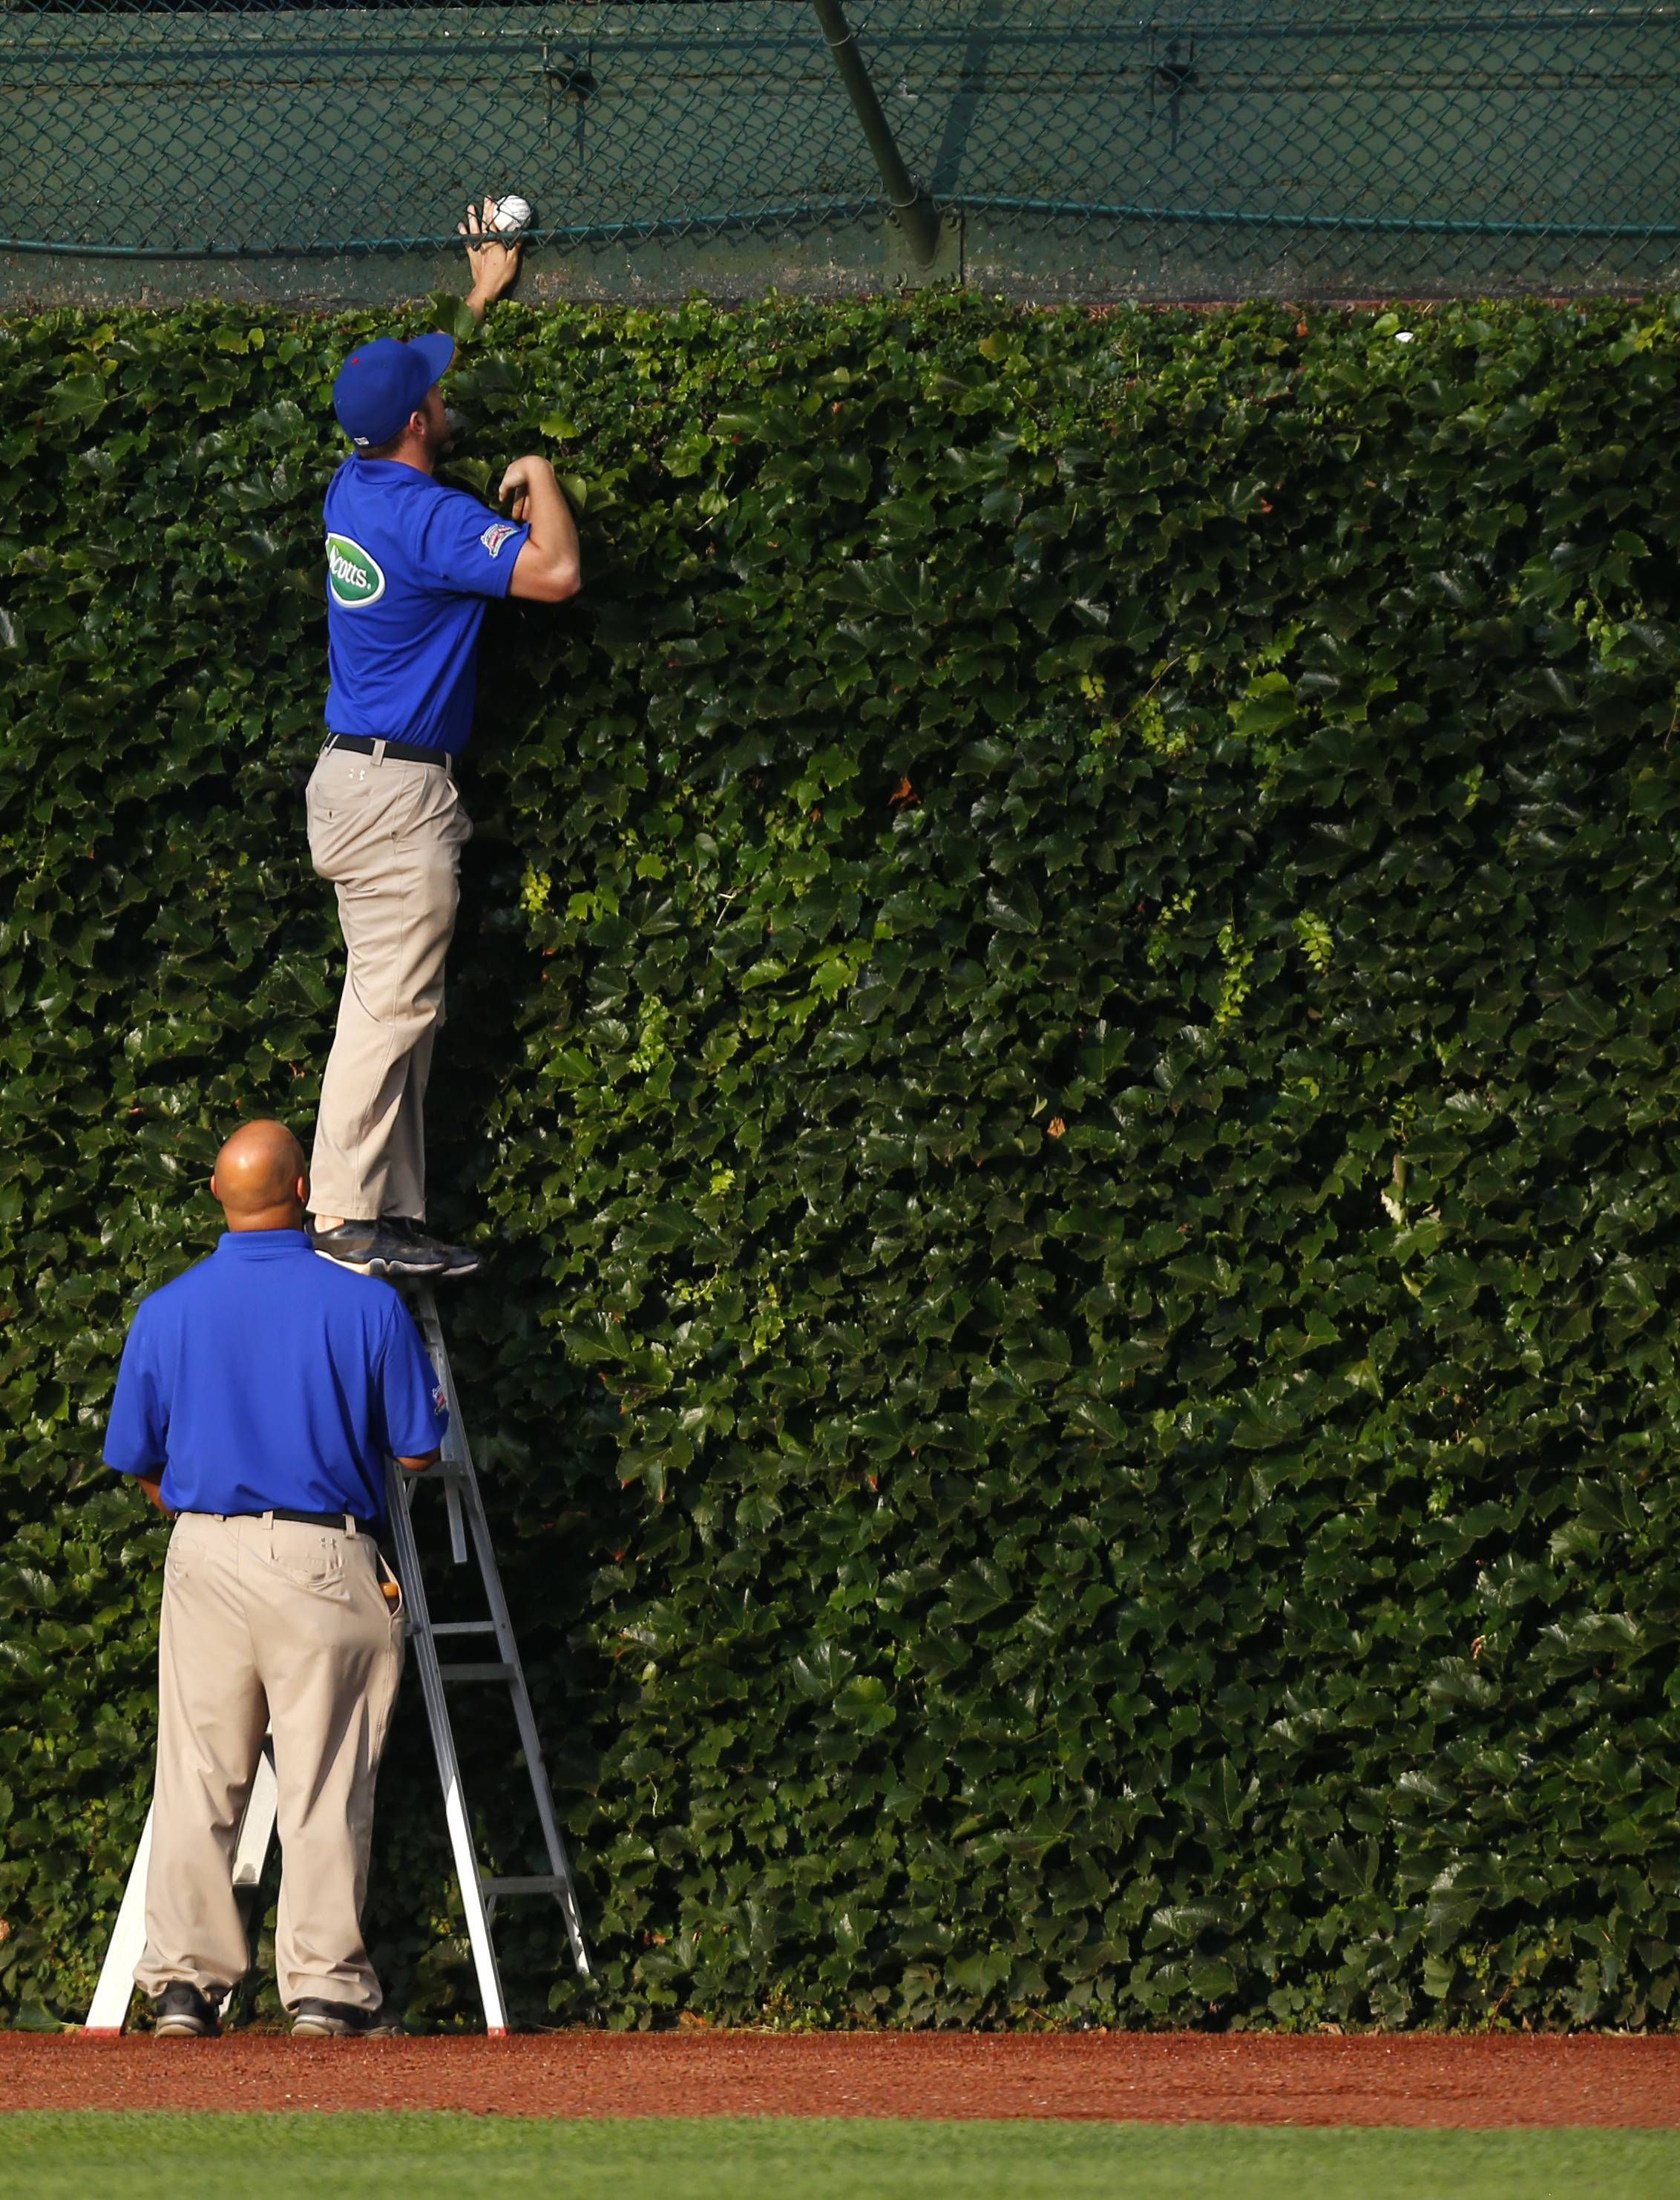 Members of the Chicago Cubs' grounds crew retrieve a baseball from the basket over the ivy wall in the outfield after batting practice before a baseball game between the San Francisco Giants and the Cubs in Chicago, Tuesday, Aug. 19, 2014.